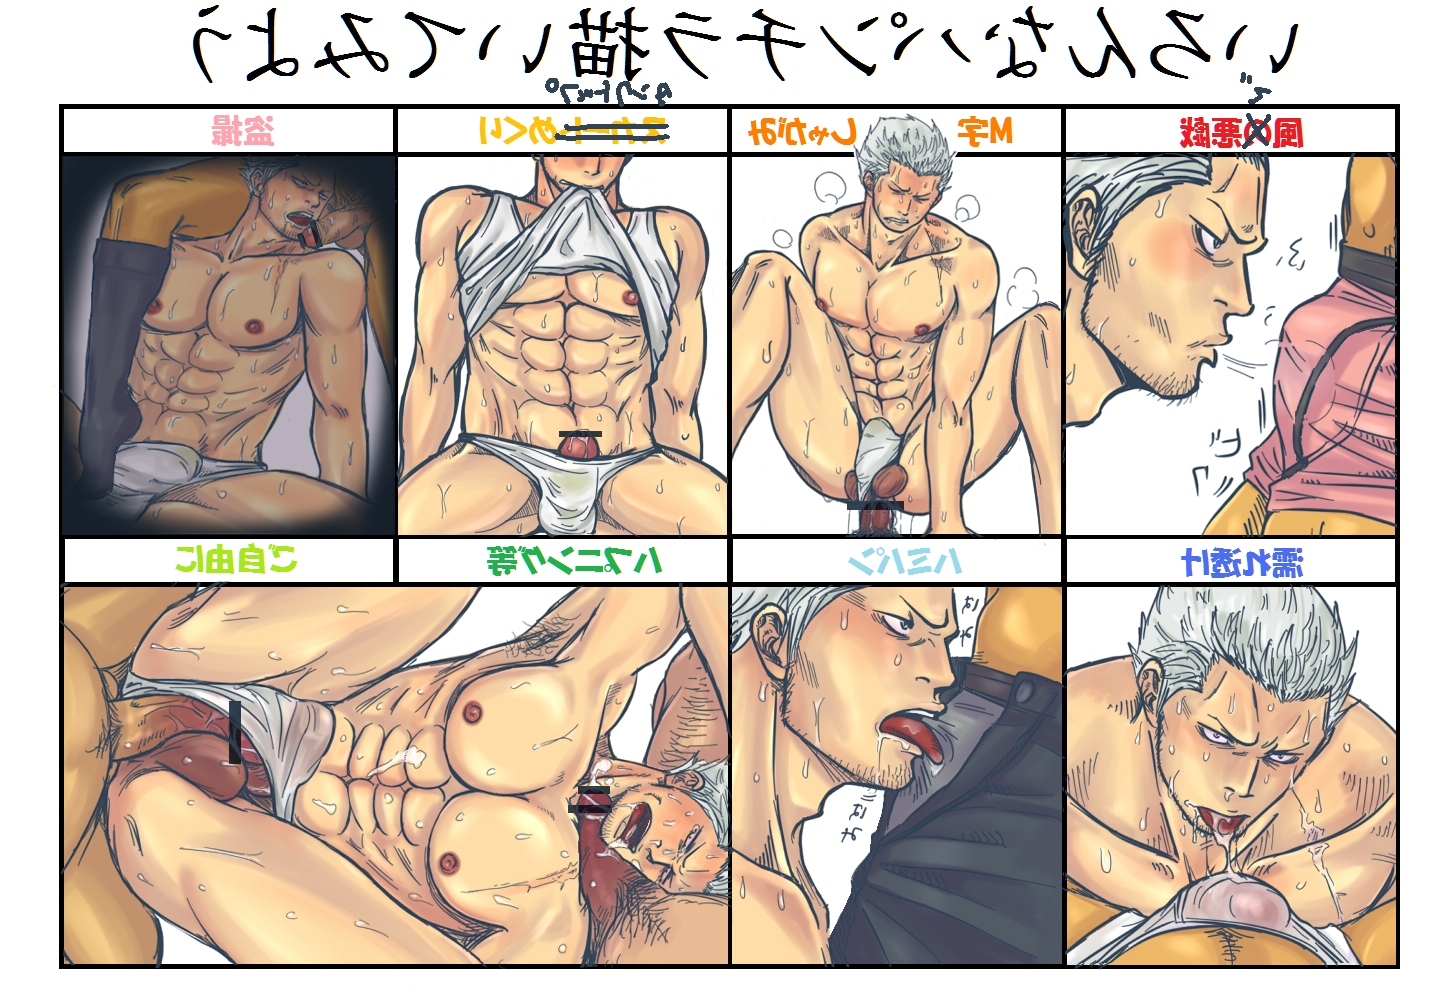 Toon sex pic ##000130846699 angry bara bulge censored cum dicks touching face gay grey hair group sex male multiple views muscle one piece open mouth oral penis penises touching saliva smoker threesome tongue white hair yaoi